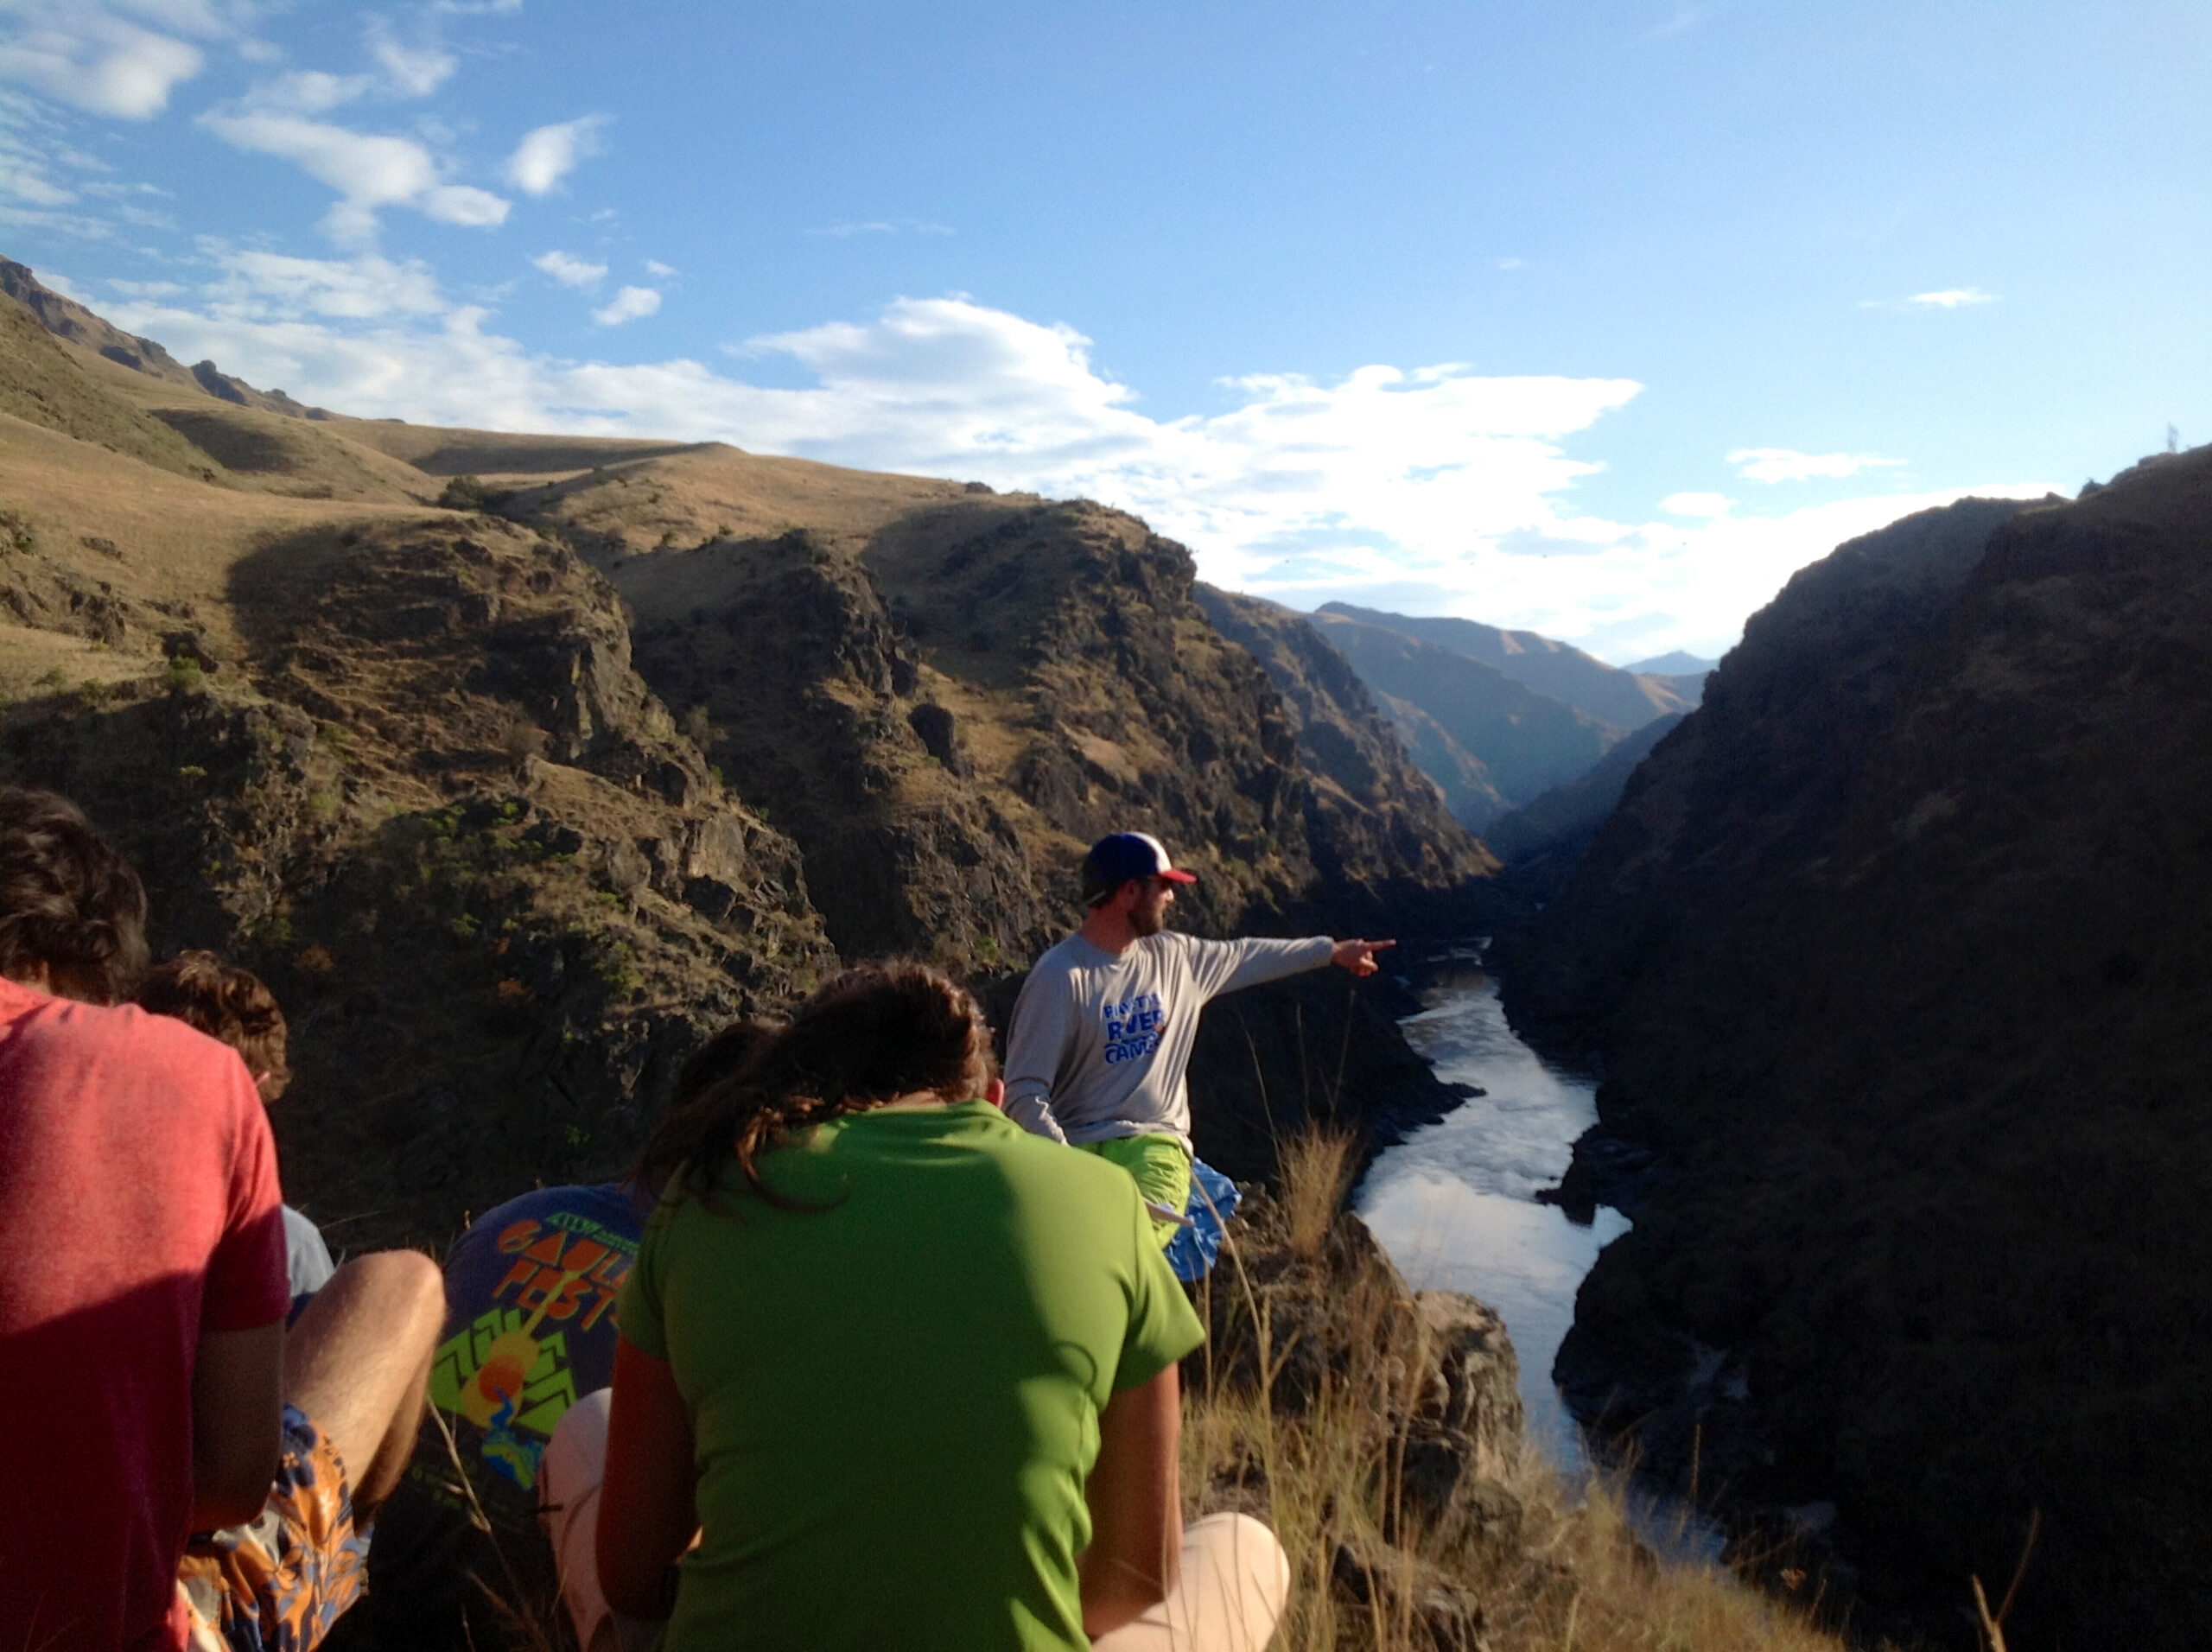 Floating the Lower Salmon River